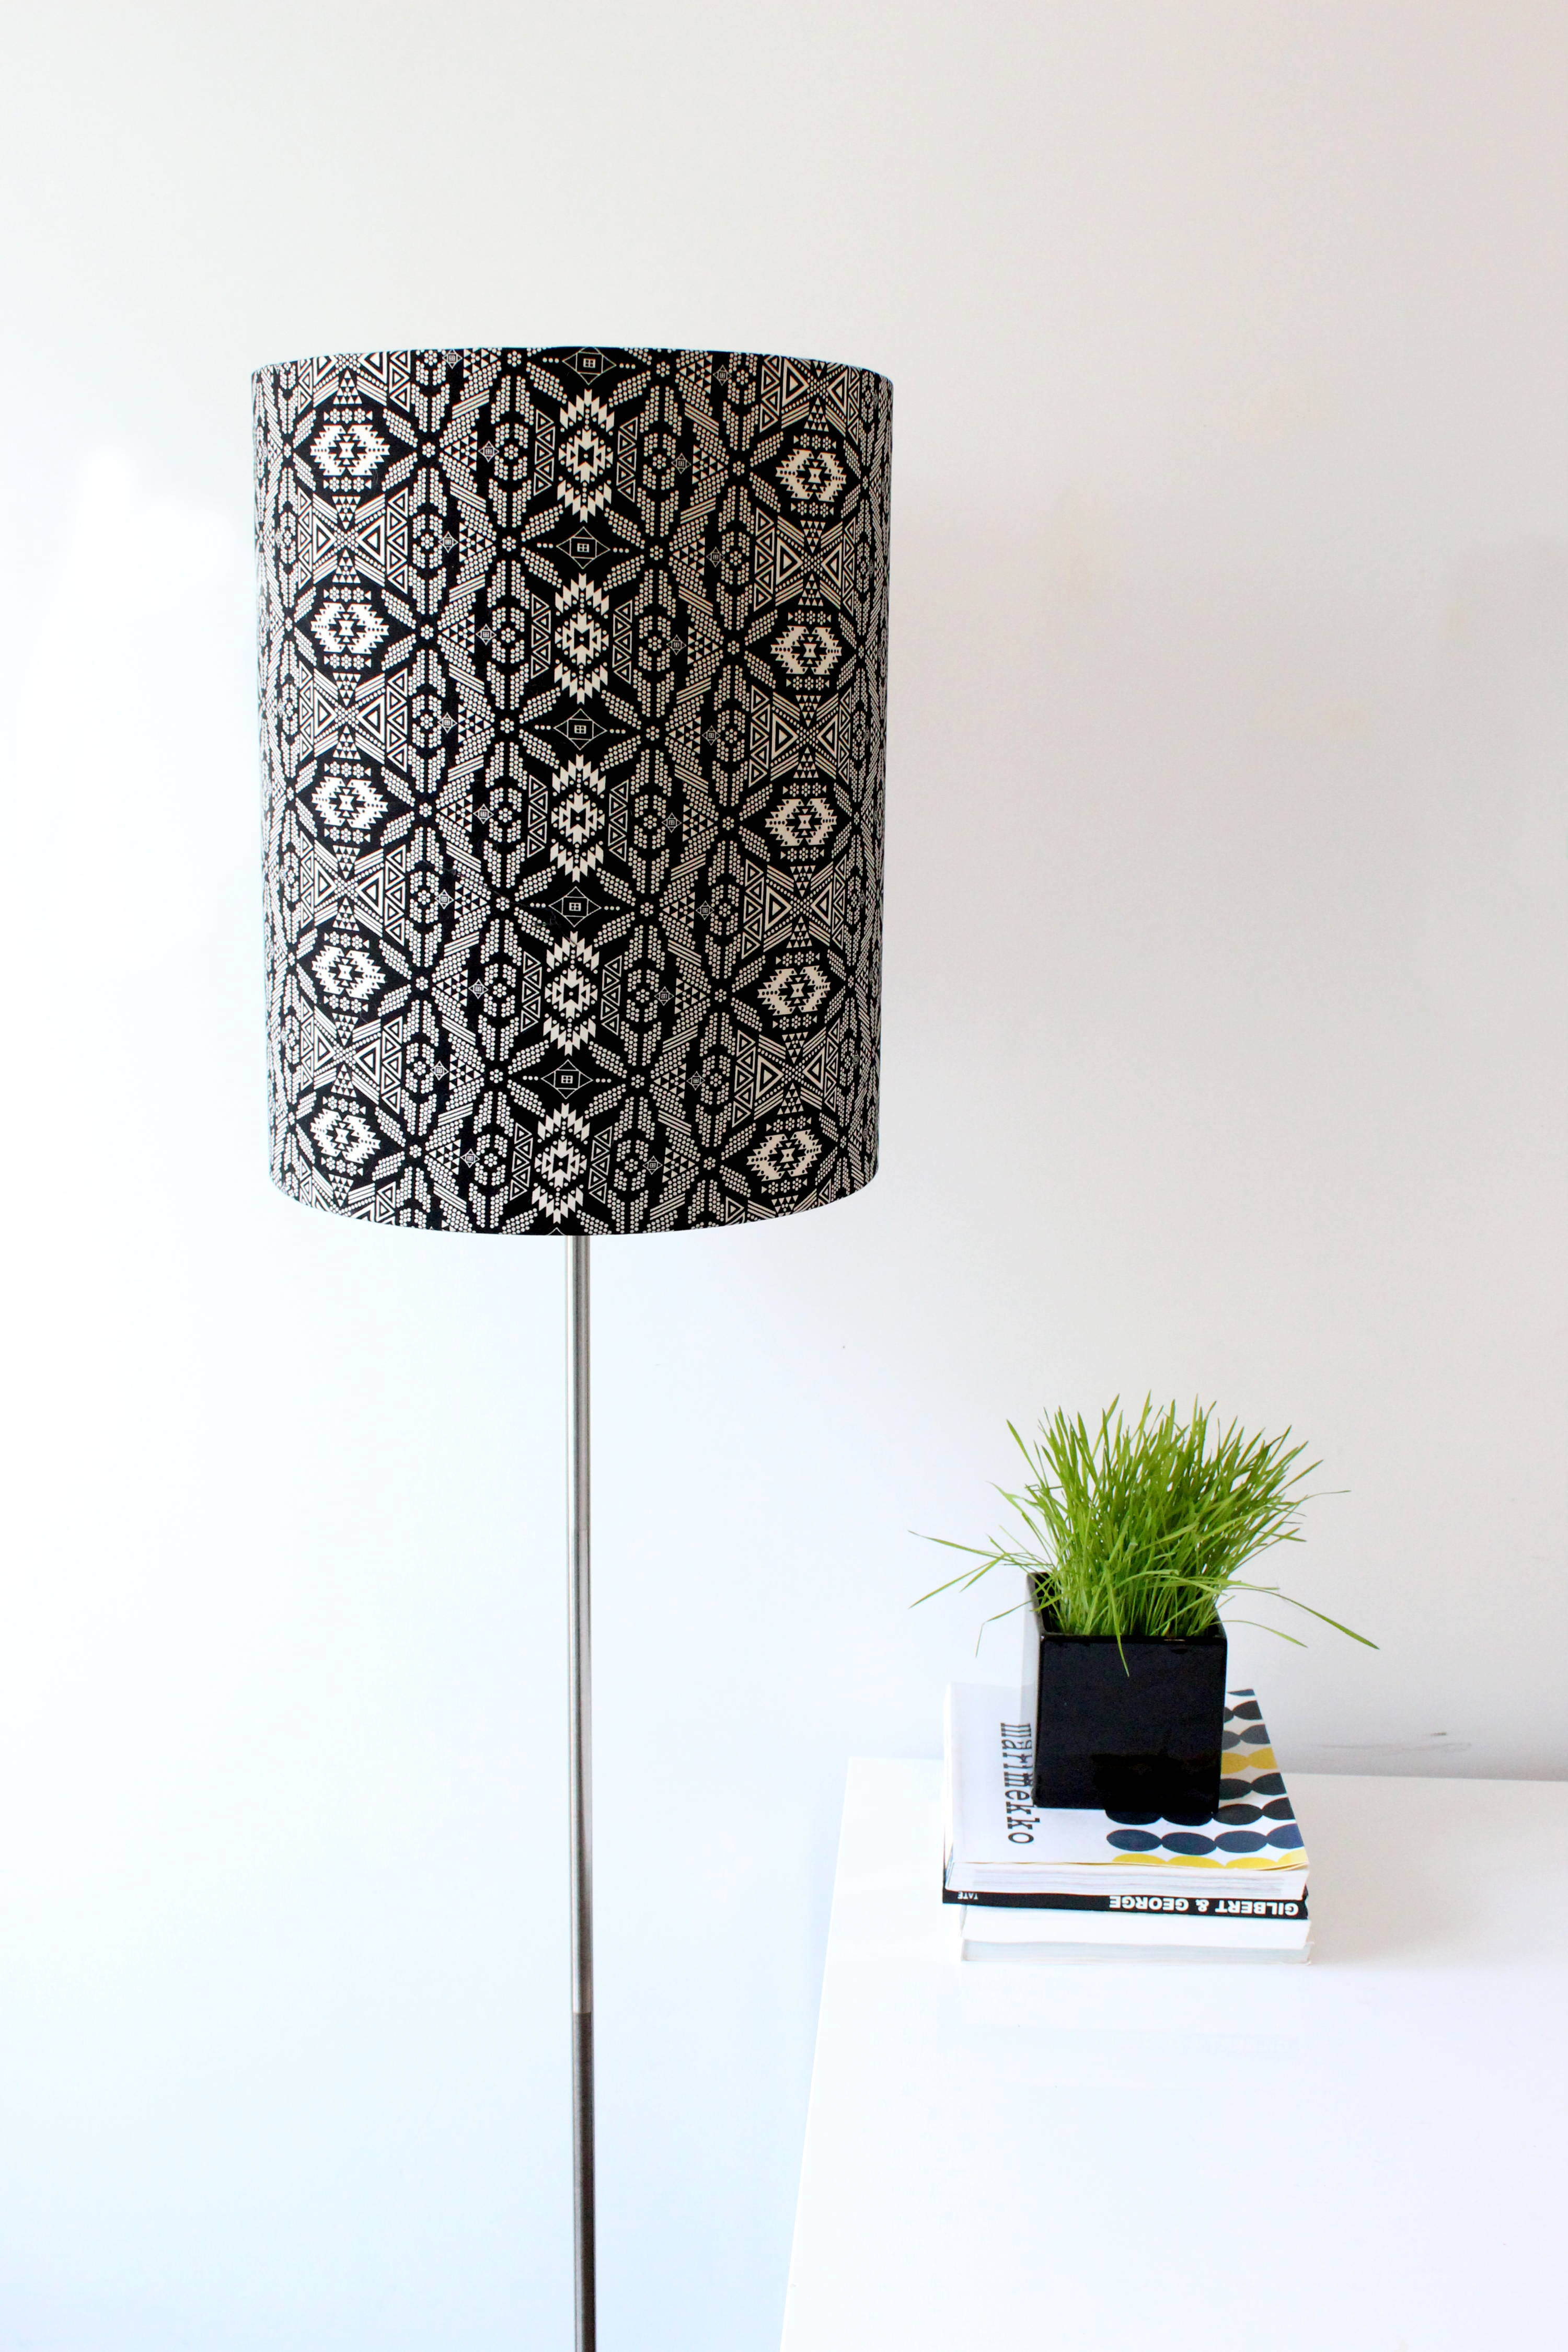 Making A Diy Lampshade From Scratch May Seem Like A Daunting Prospect But With An Easy To Follow Lampshade Tutorial You Ll See That It S Easy As Pie Diylampshade Lampshade Diyhomedeocr Makely